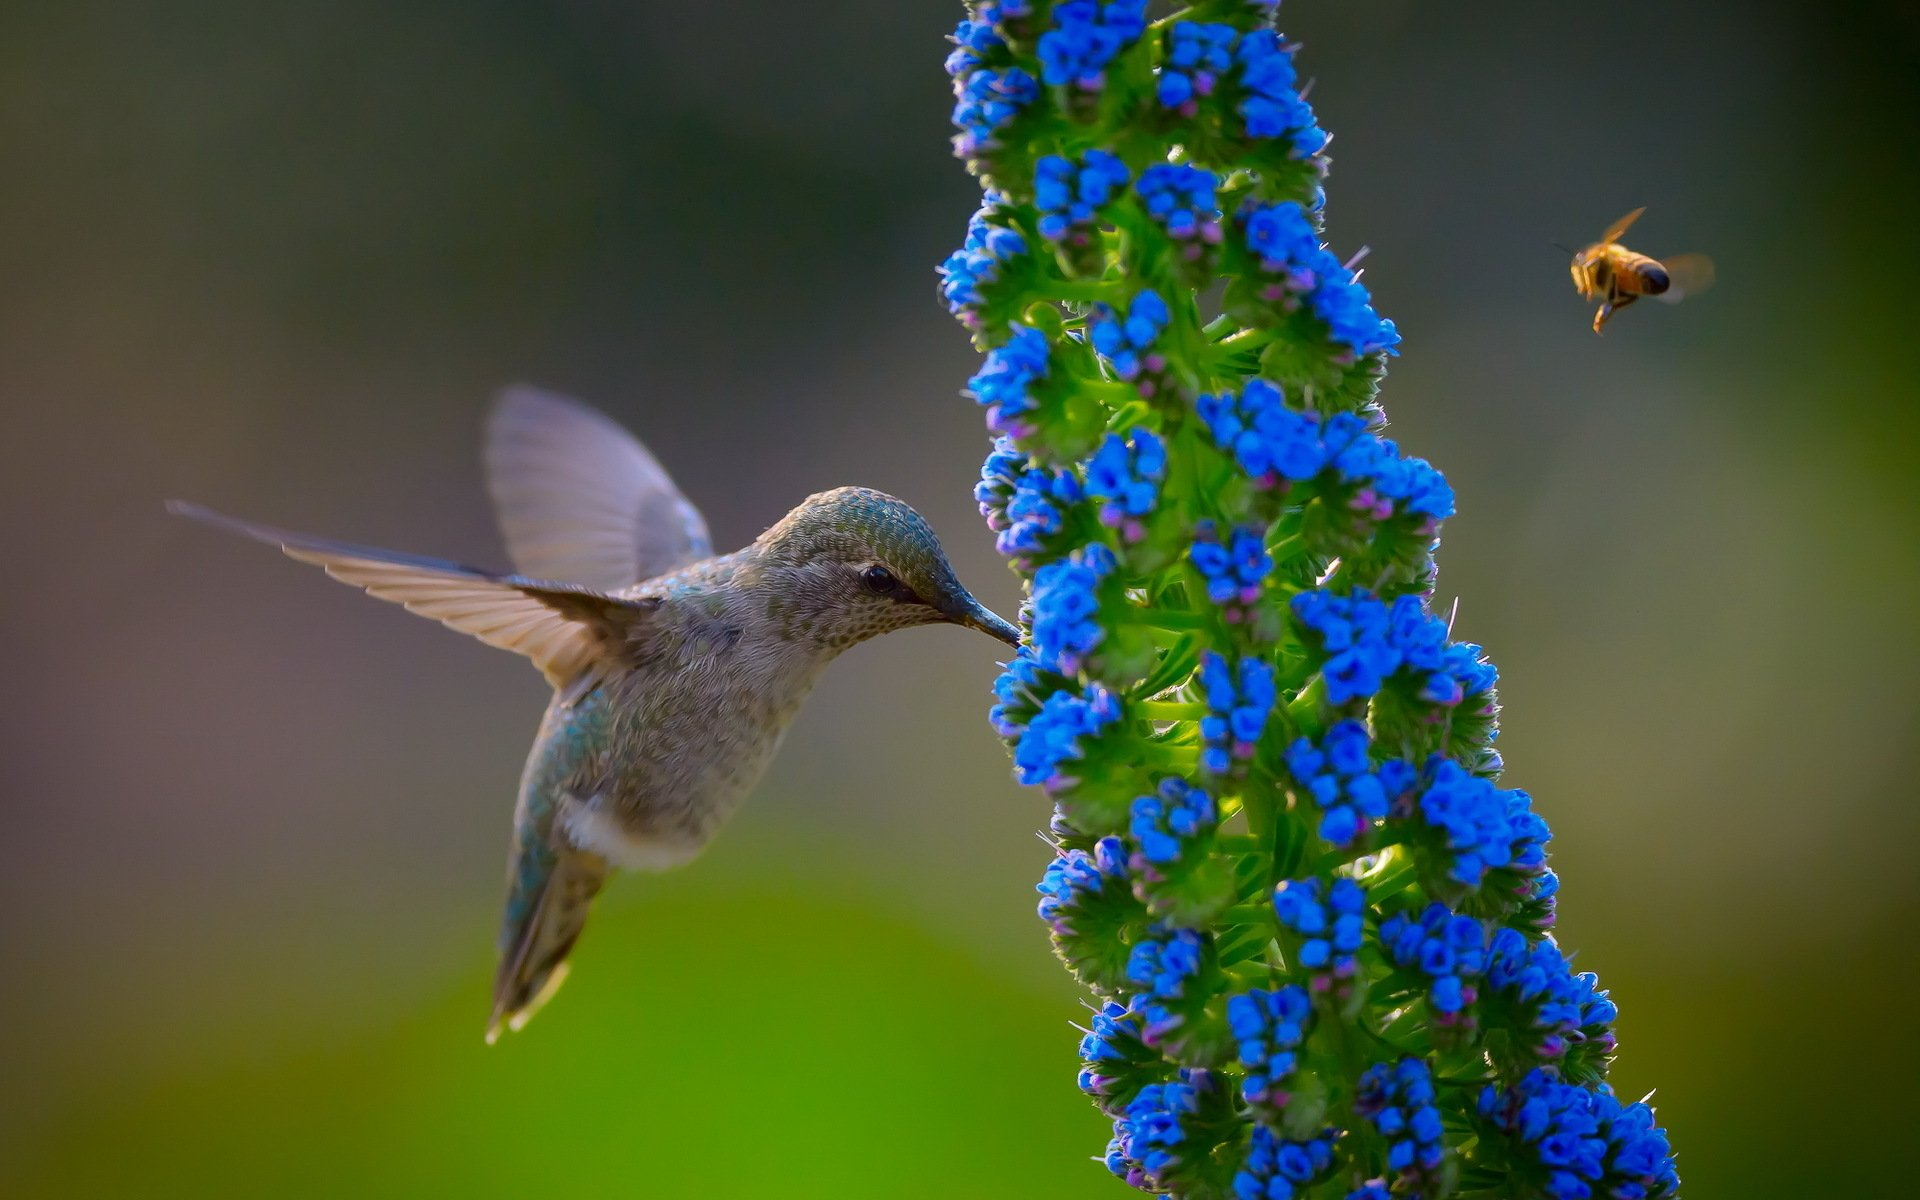 Animal - Hummingbird  Bird Wallpaper